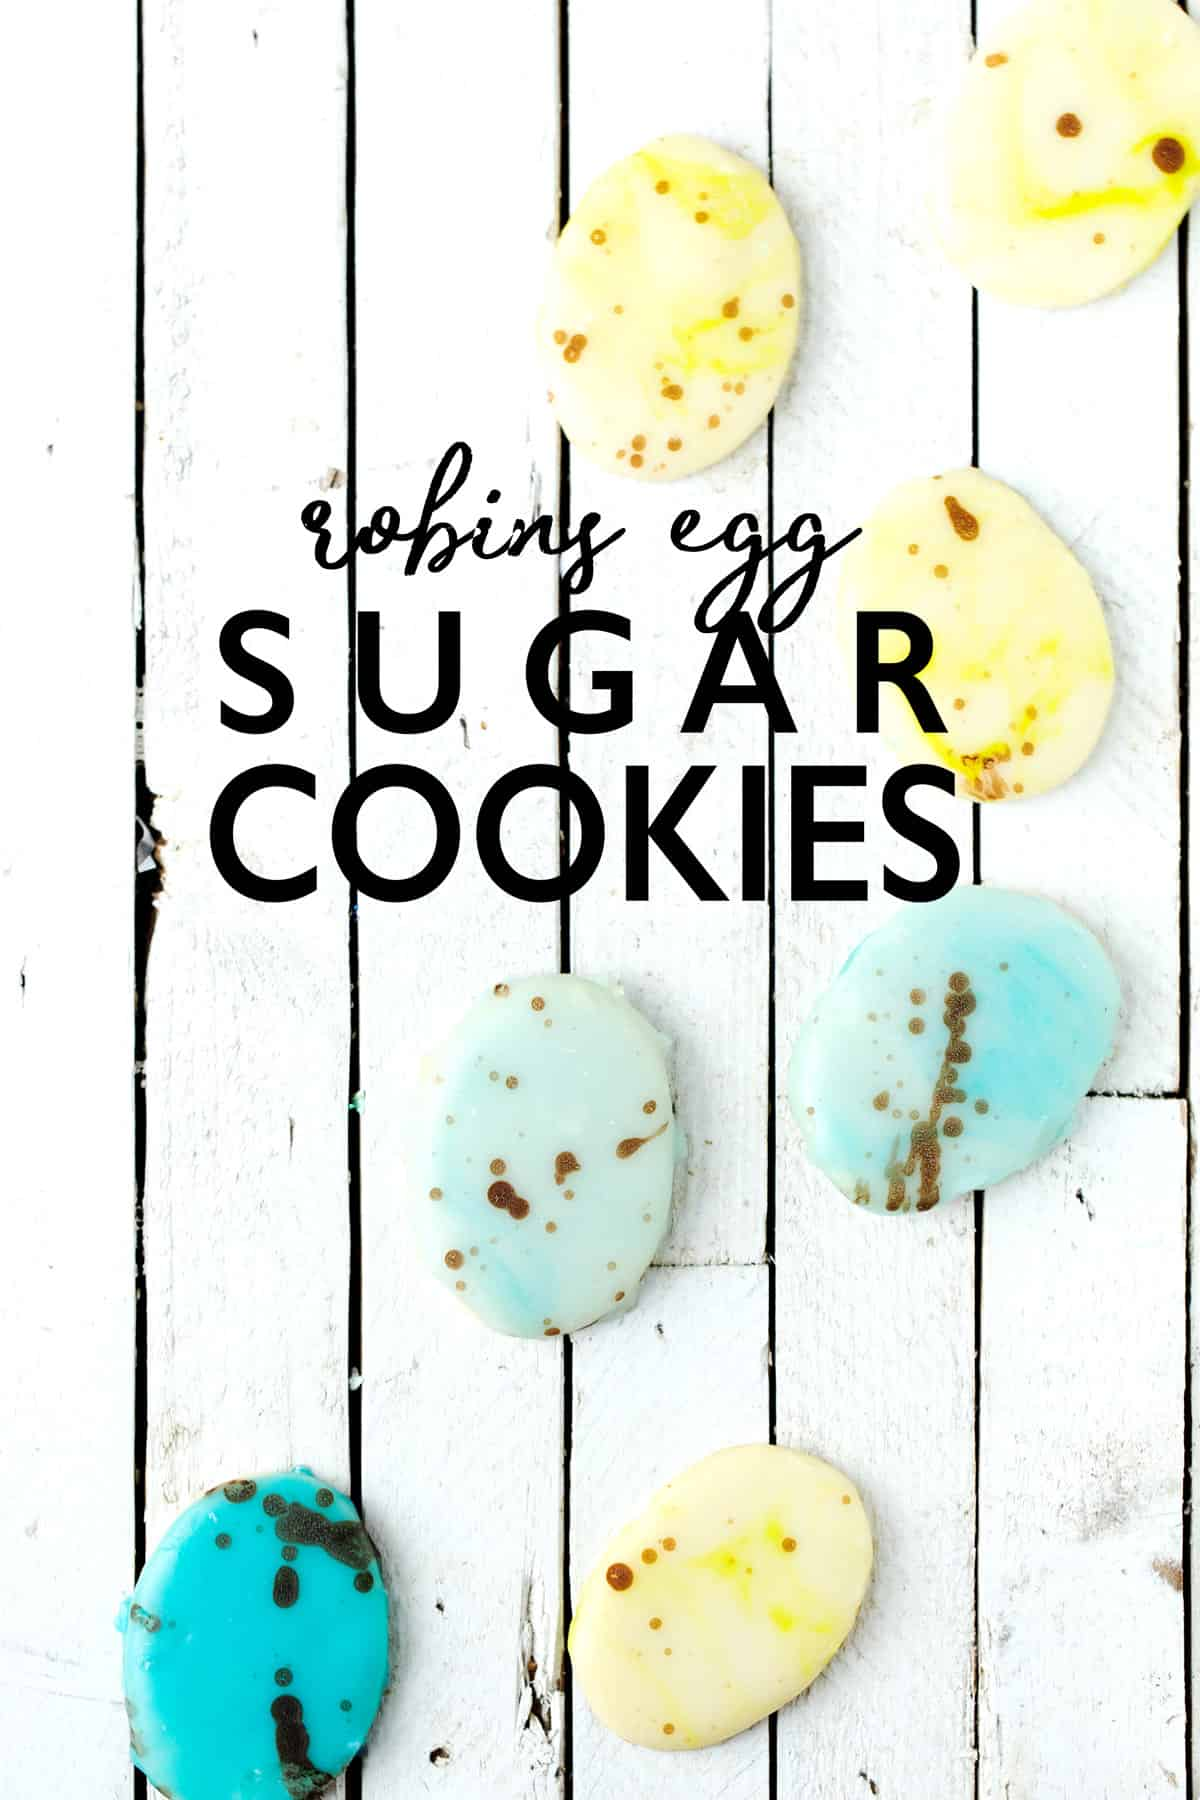 Speckled Robins Egg Easter Cookies with quick poured frosting are easy to make, taste delicious and look both adorably sophisticated in their own natural way. Easter egg cookies | sugar cookie recipe | speckled quail eggs | robin egg blue